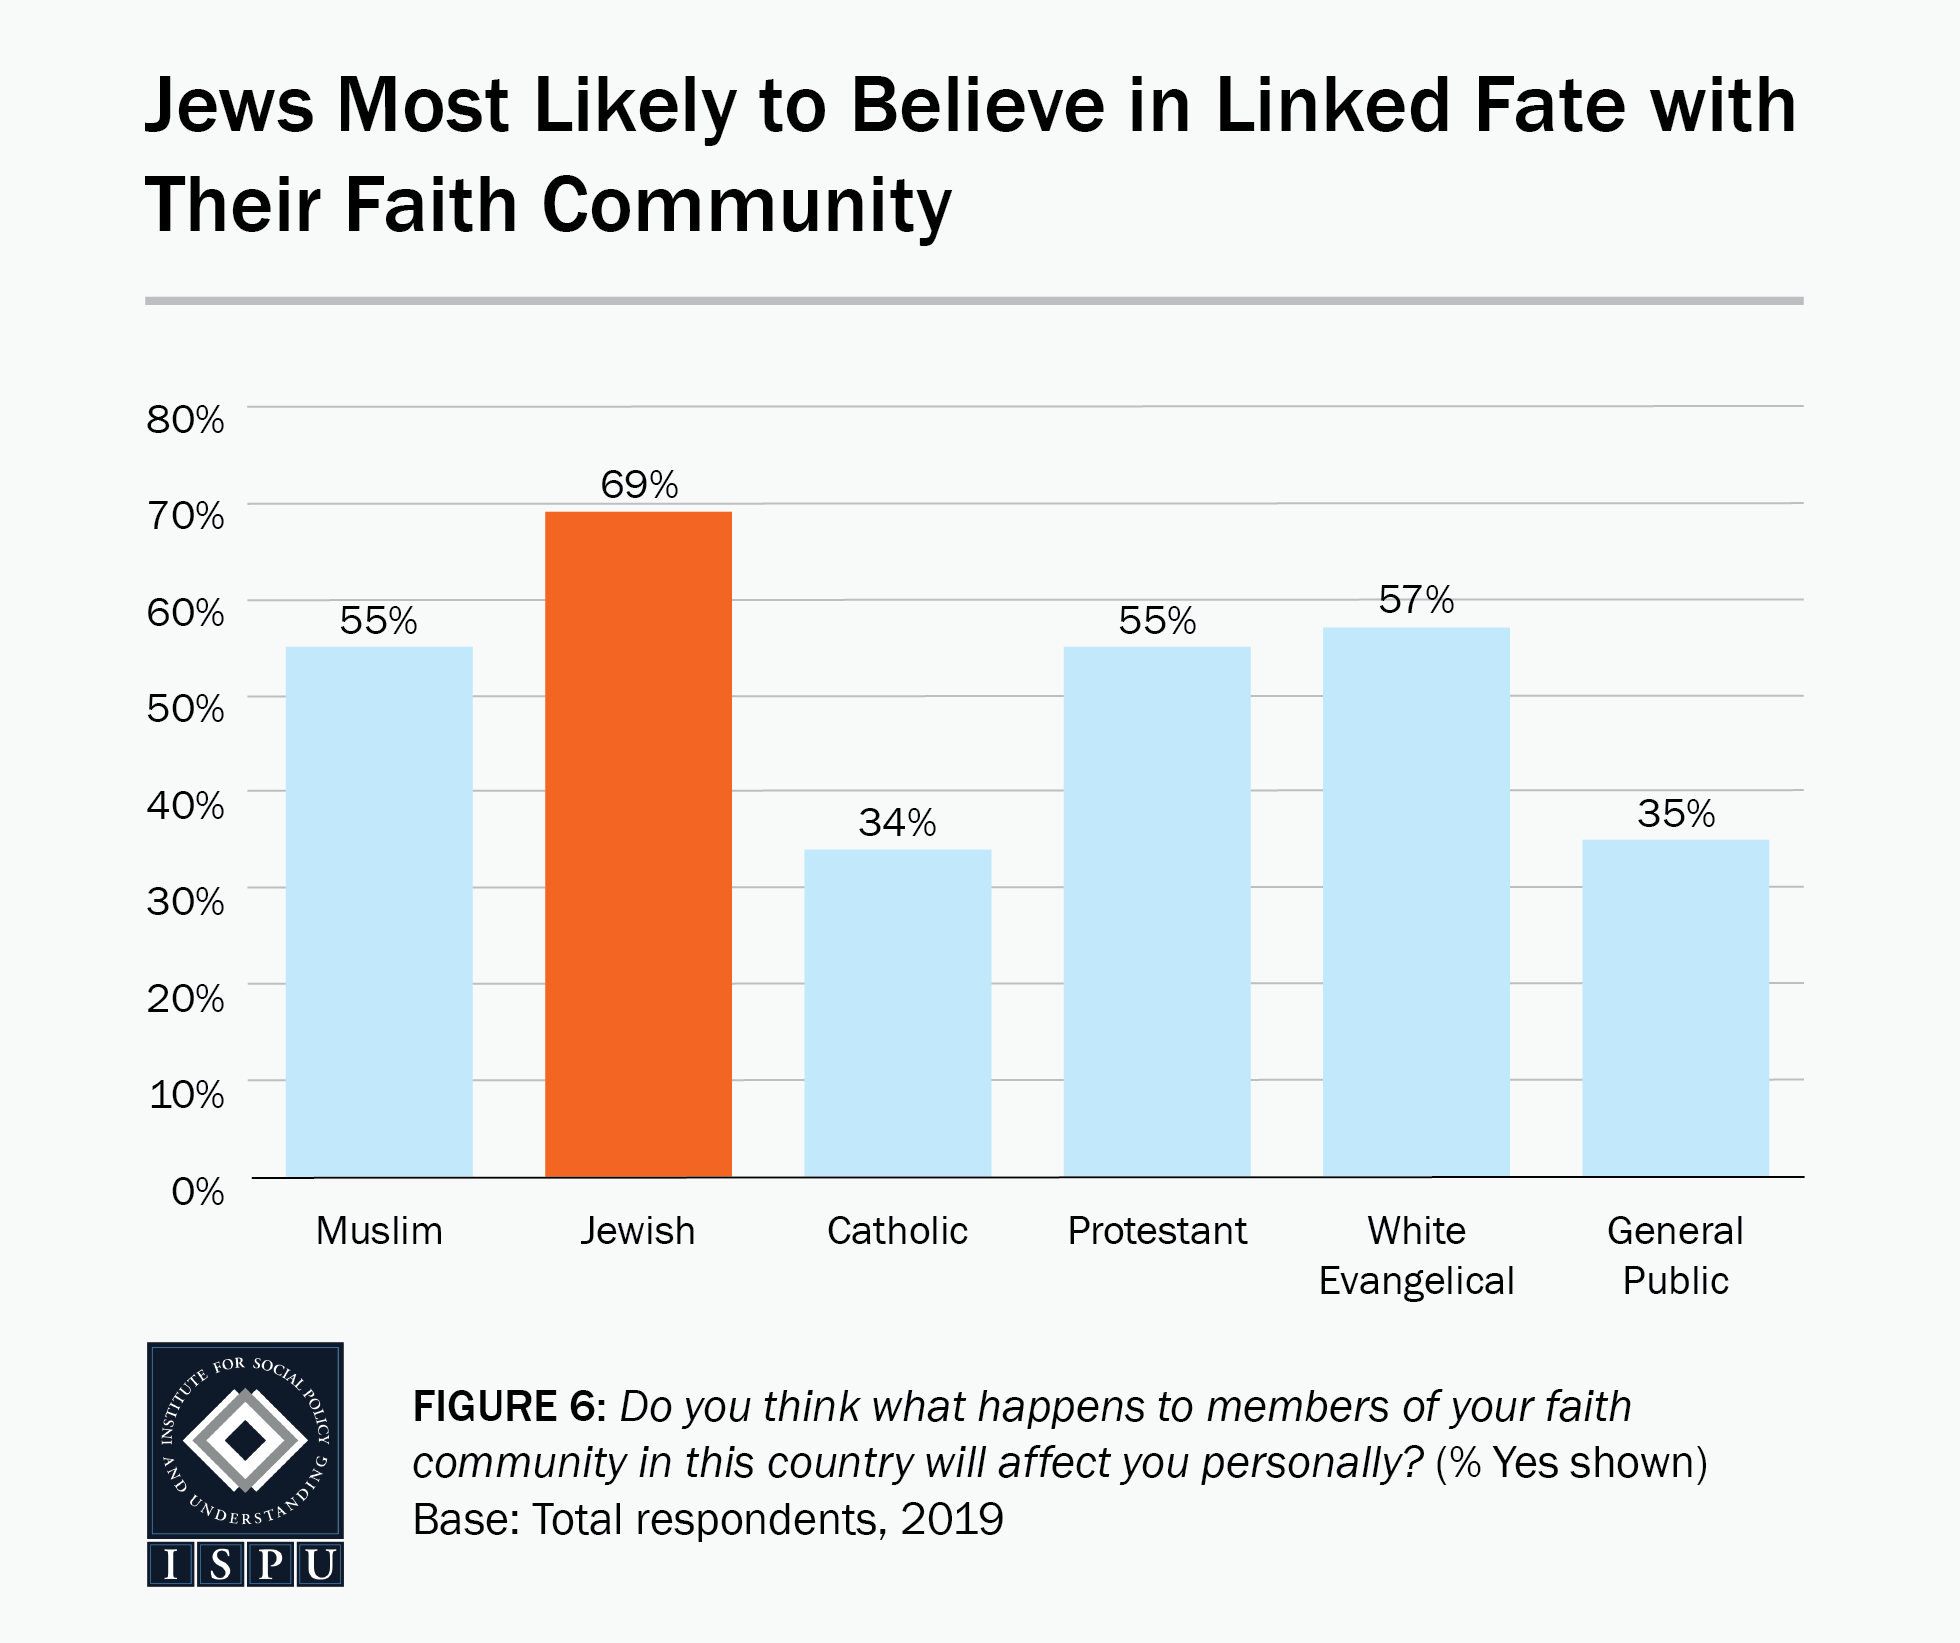 Figure 6: A bar graph showing that Jews (69%) are the most likely faith group to believe in linked fate with their faith community